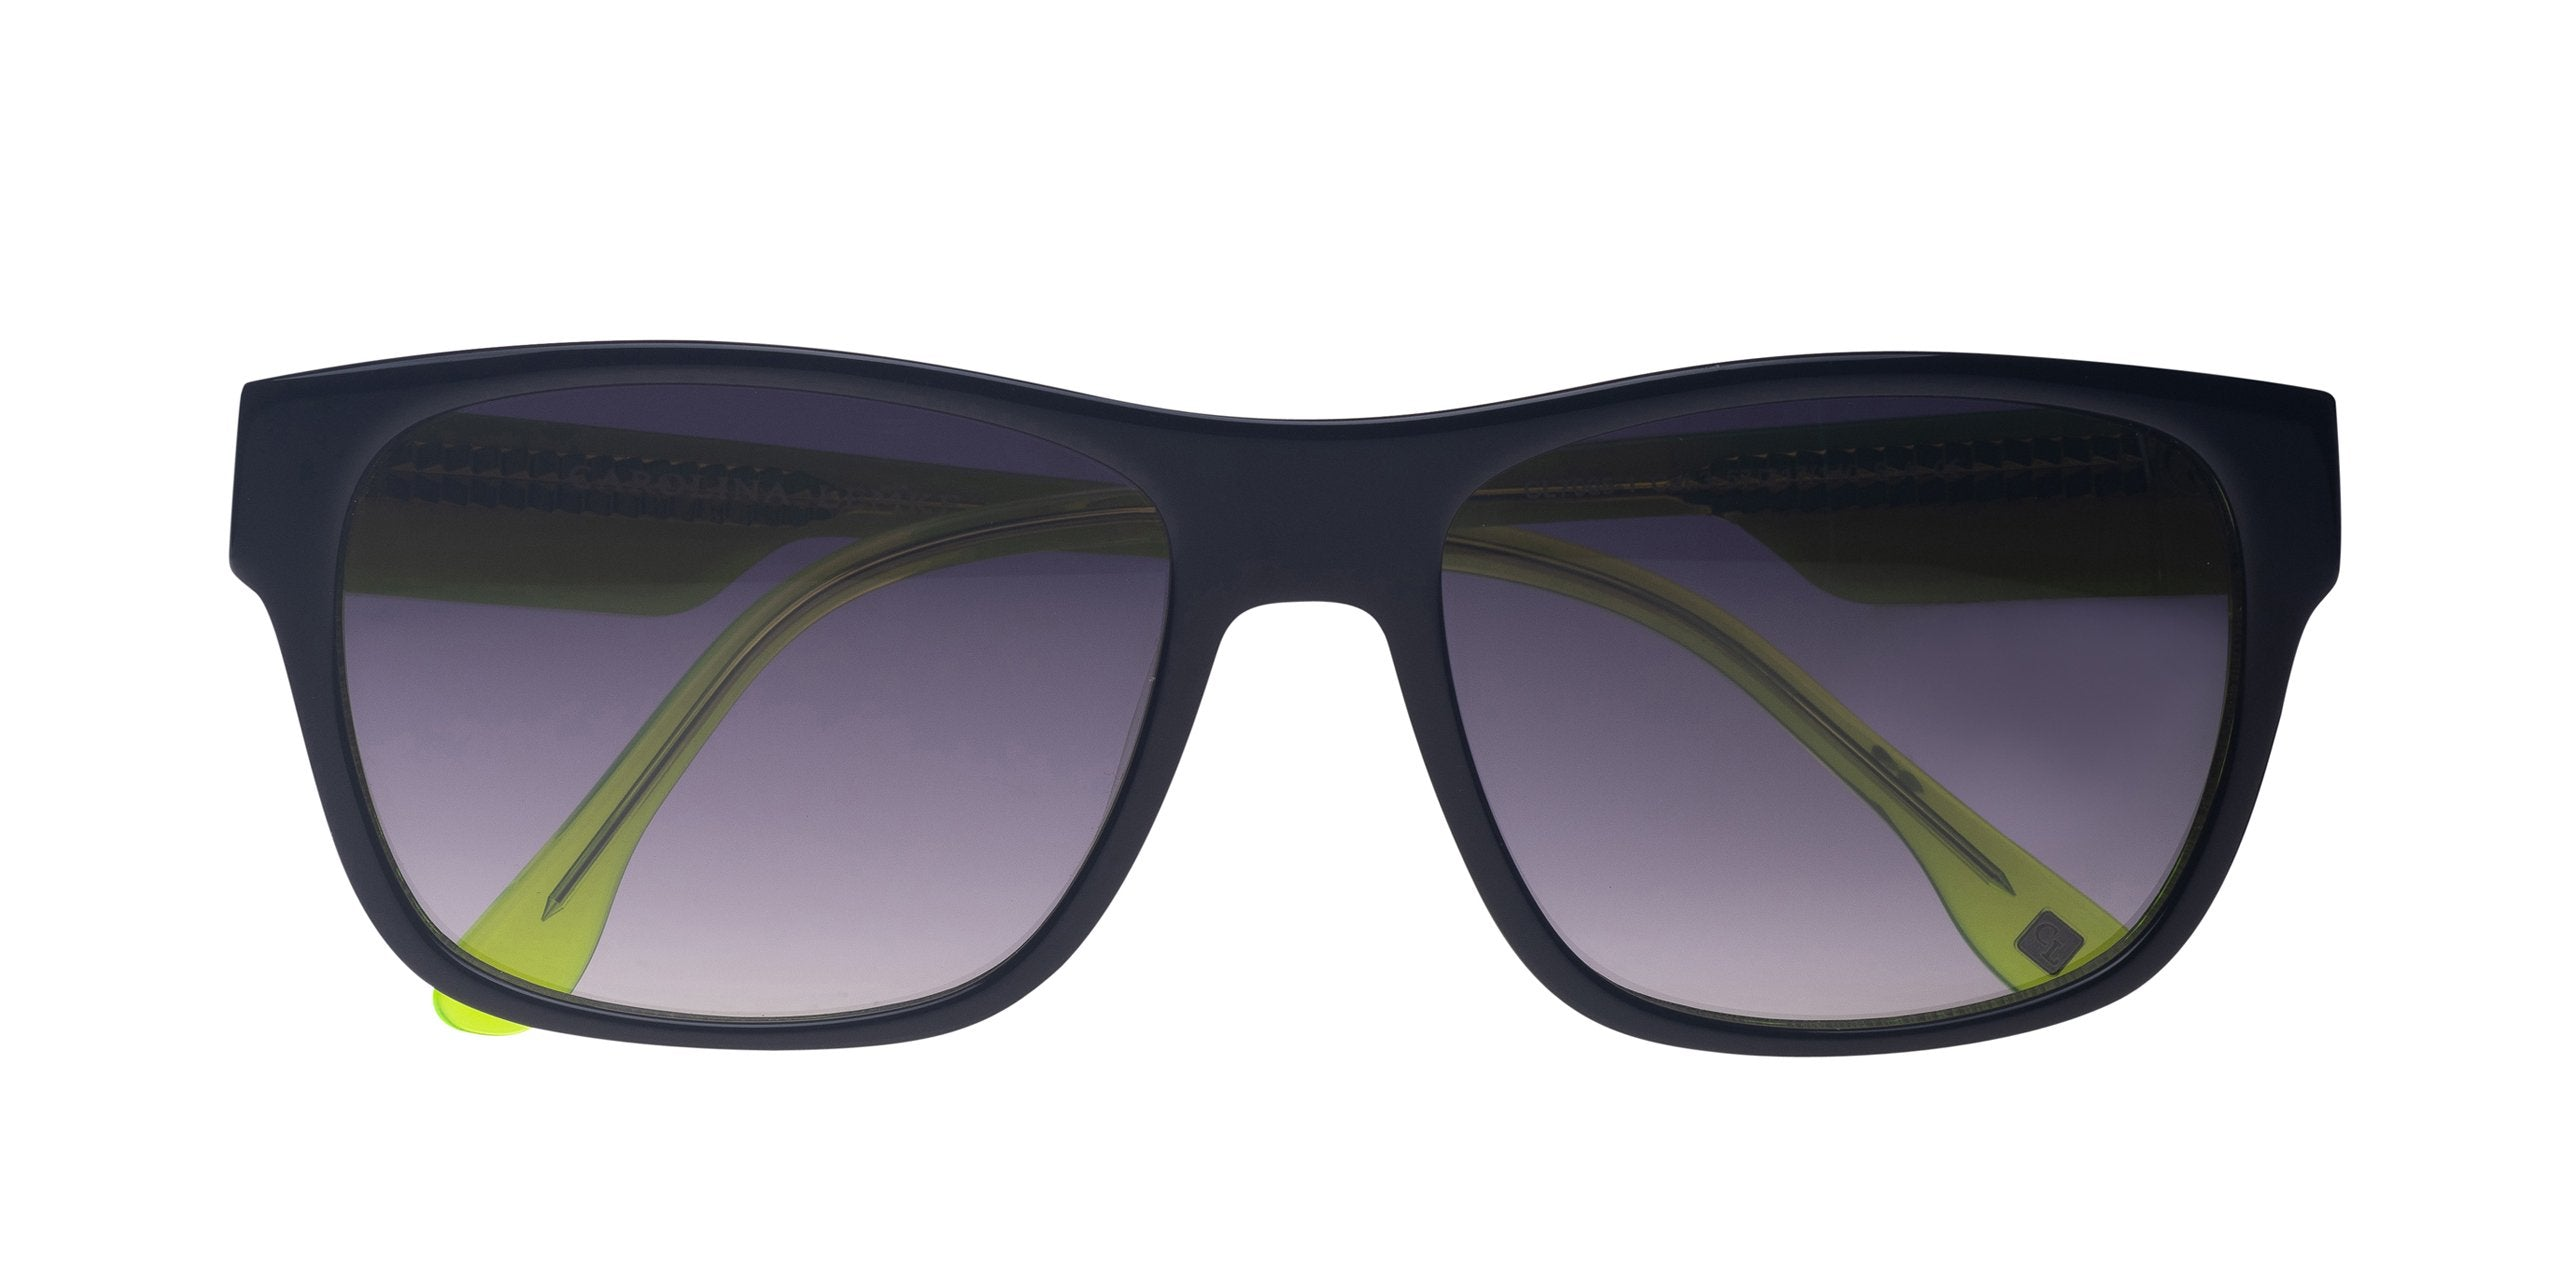 FRAME Black White Neon Yellow LENS Gradient Smoke